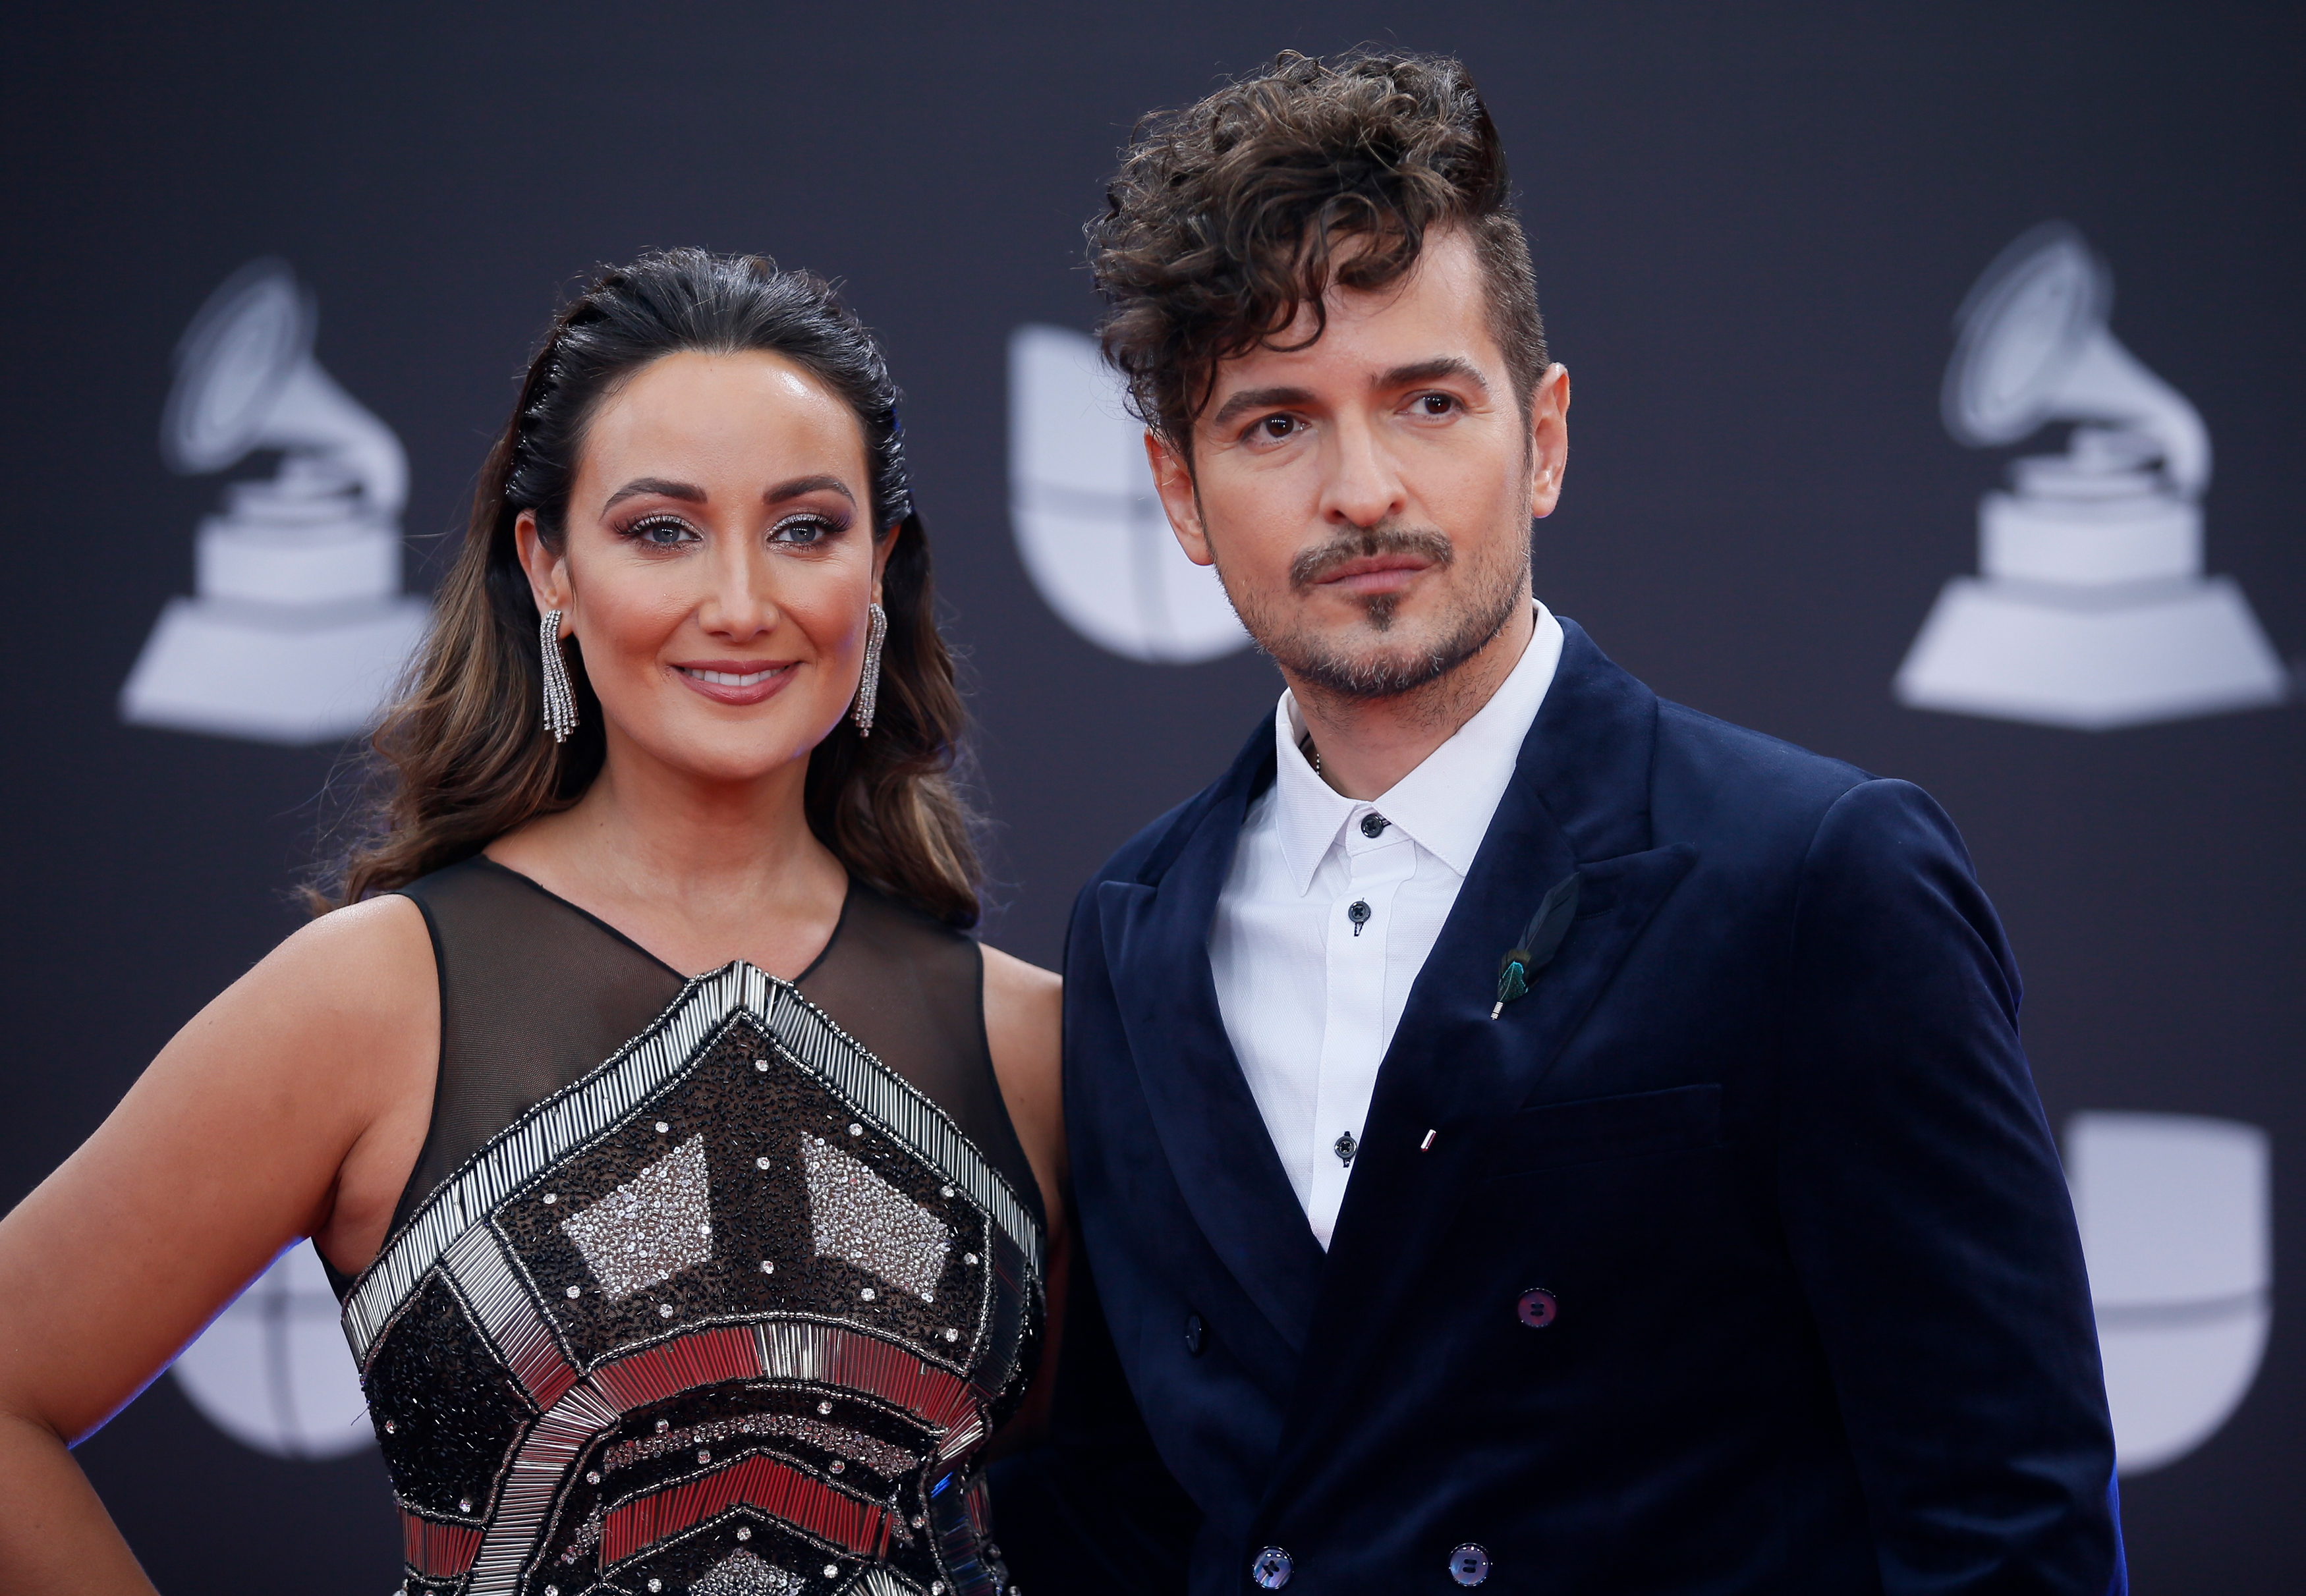 The 20th Annual Latin Grammy Awards – Arrivals – Las Vegas, Nevada, U.S., November 14, 2019 – Tommy Torres and guest. REUTERS/Danny Moloshok